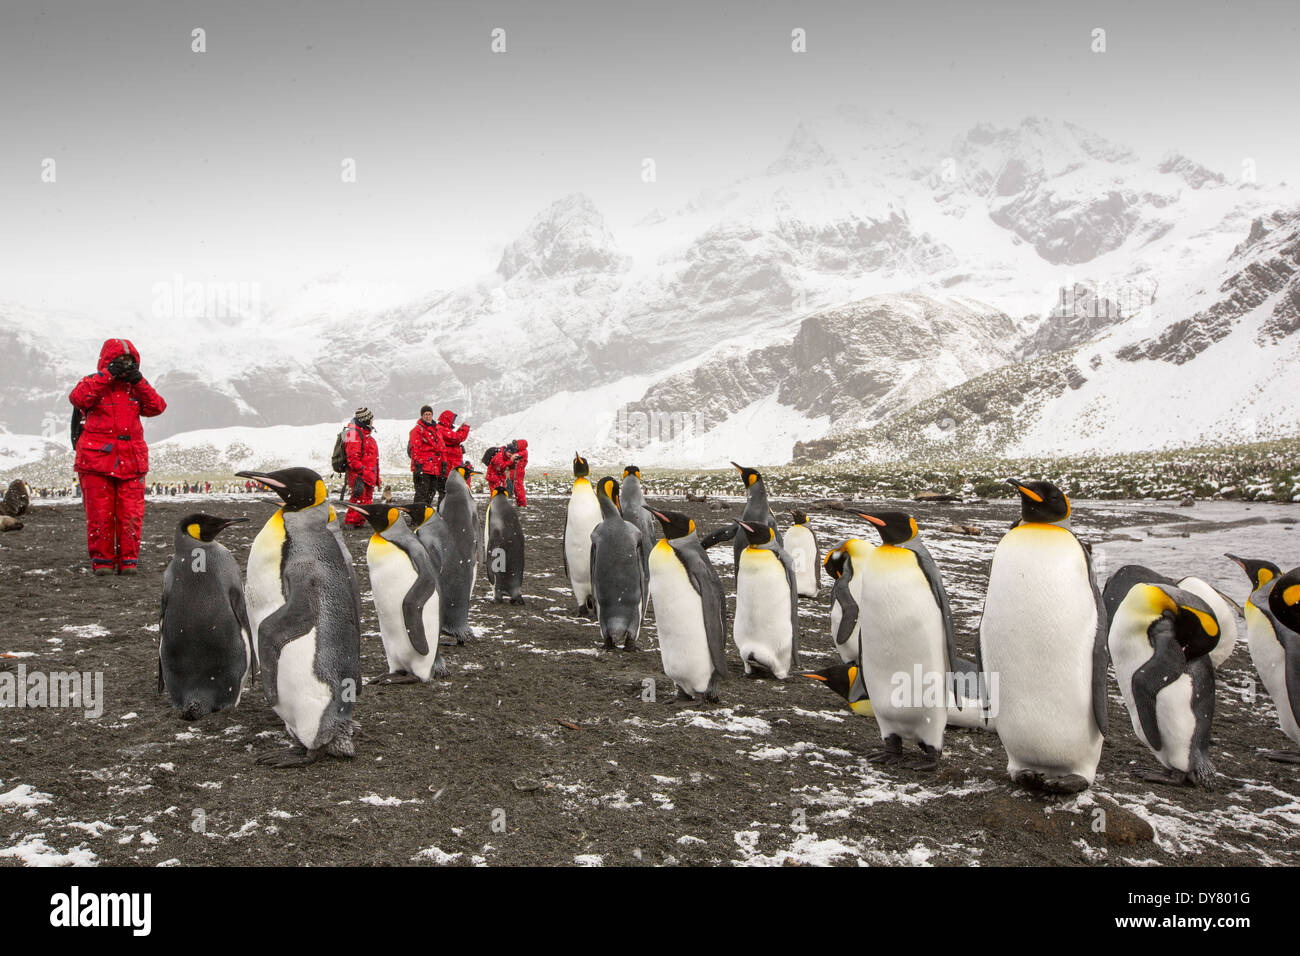 King Penguins at Gold Harbour, South Georgia, with passengers from an expedition cruise. - Stock Image